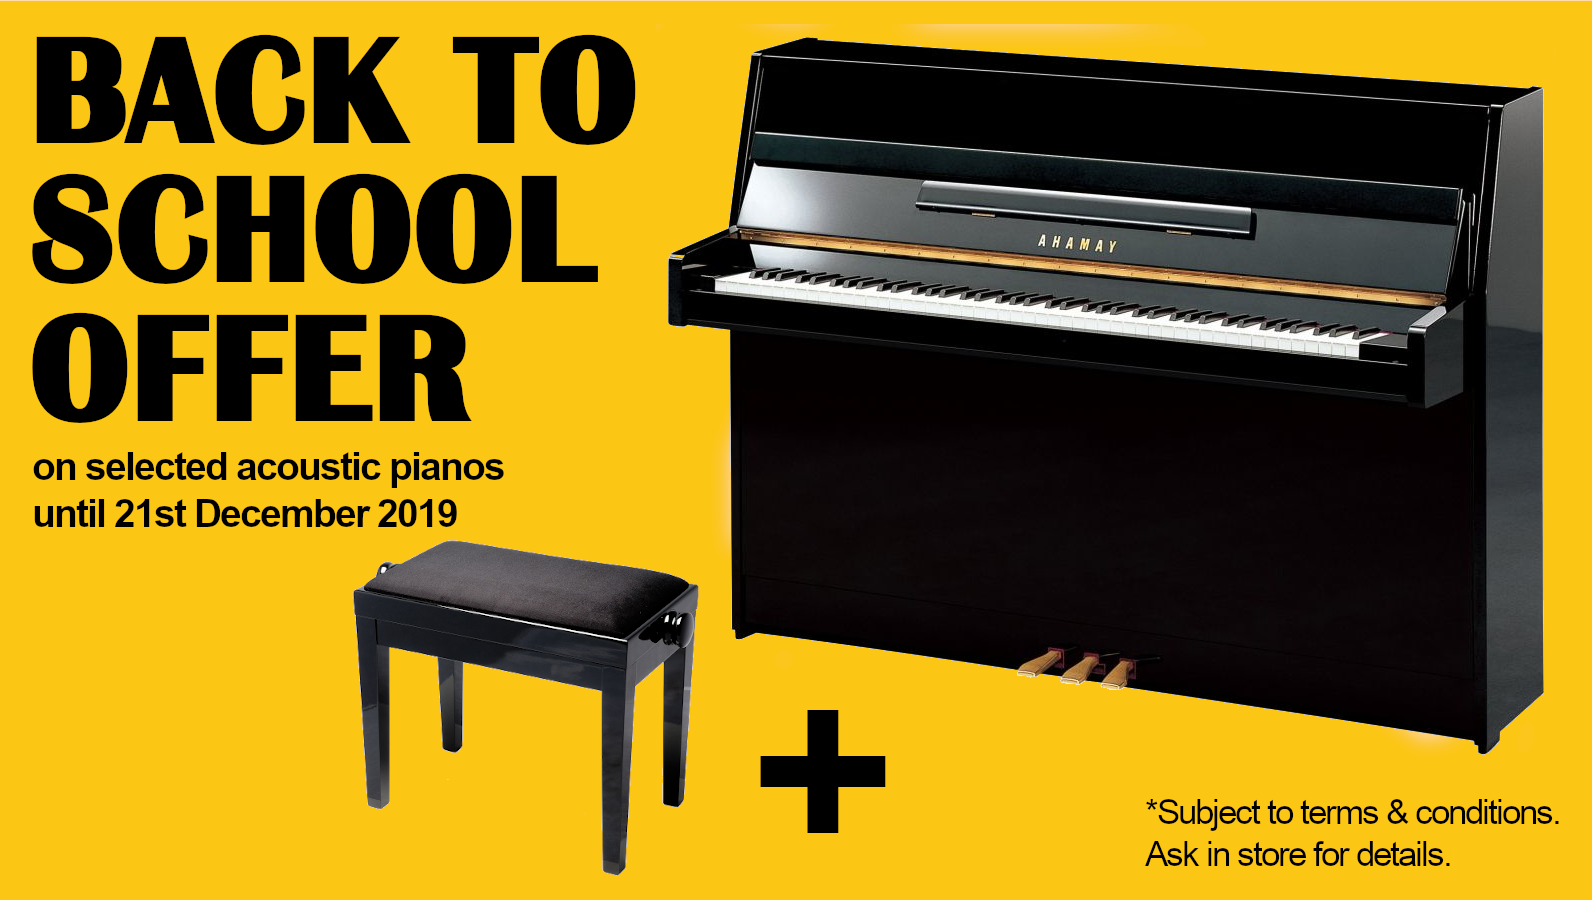 Back to School Acoustic Pianos Offer 2019